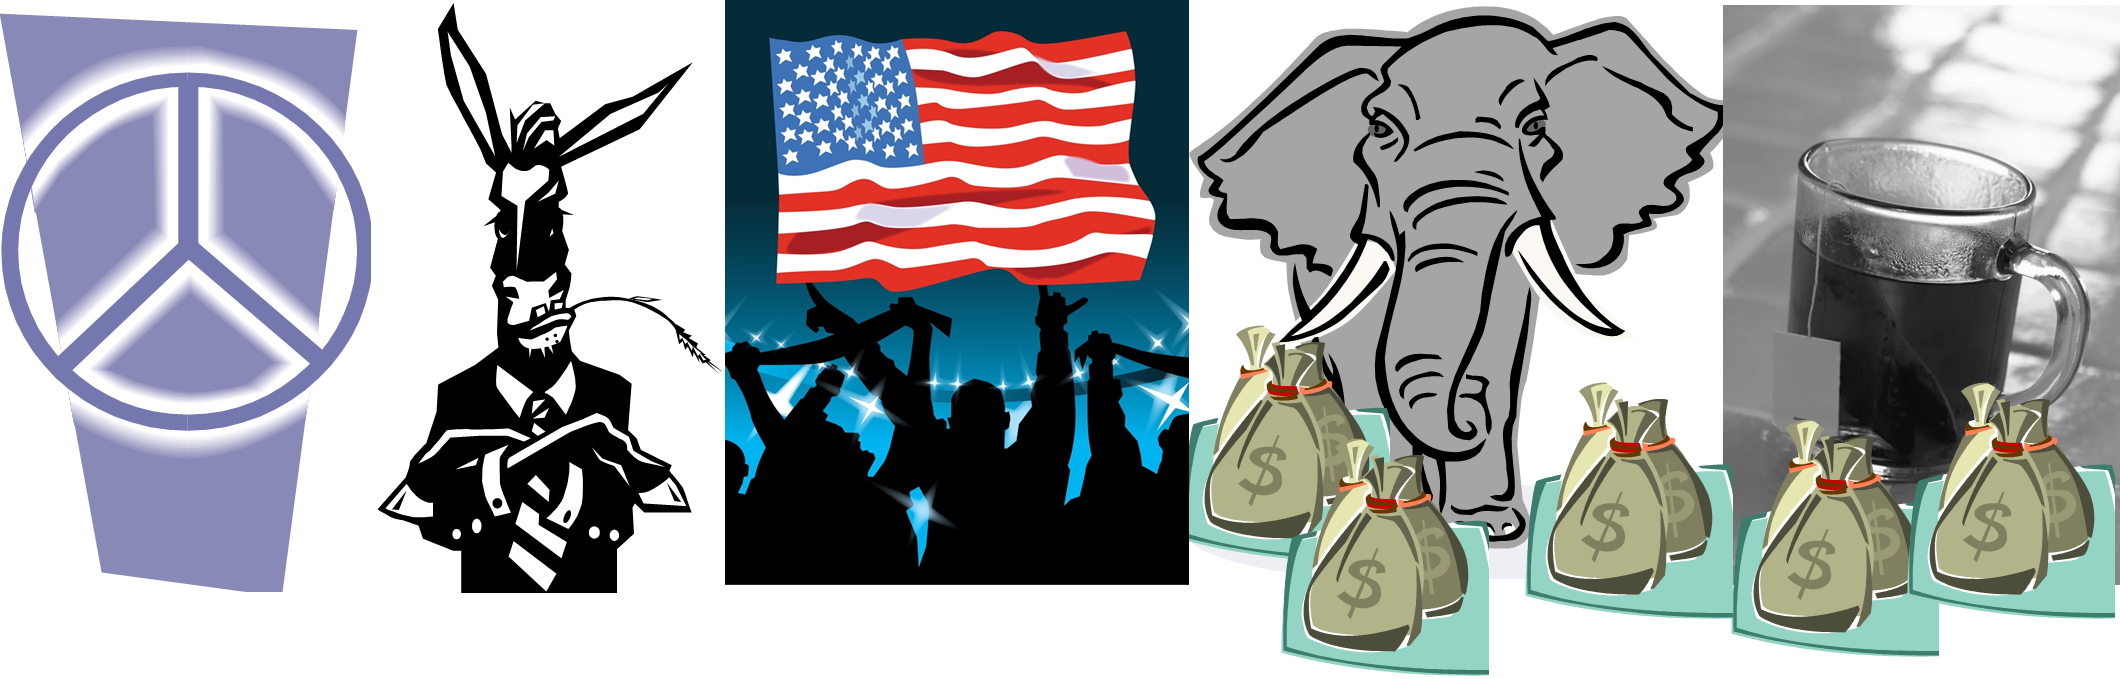 Memorial day money clipart svg transparent stock News and thoughts on war & peace, politics, human rights, race and ... svg transparent stock